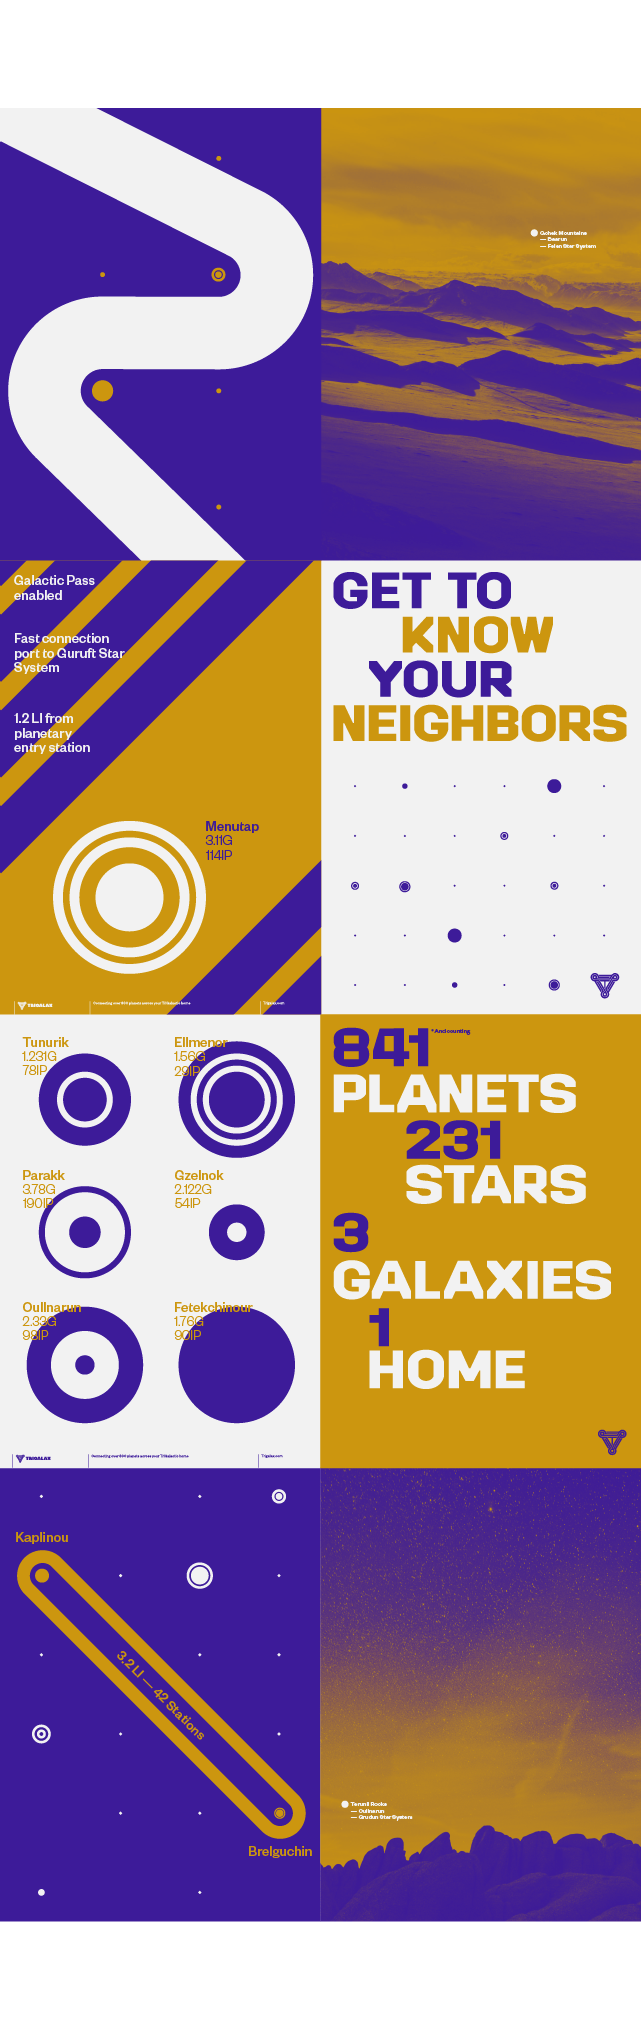 17_Trigalax-Space-Branding-Campaign-Posters-System-M-1